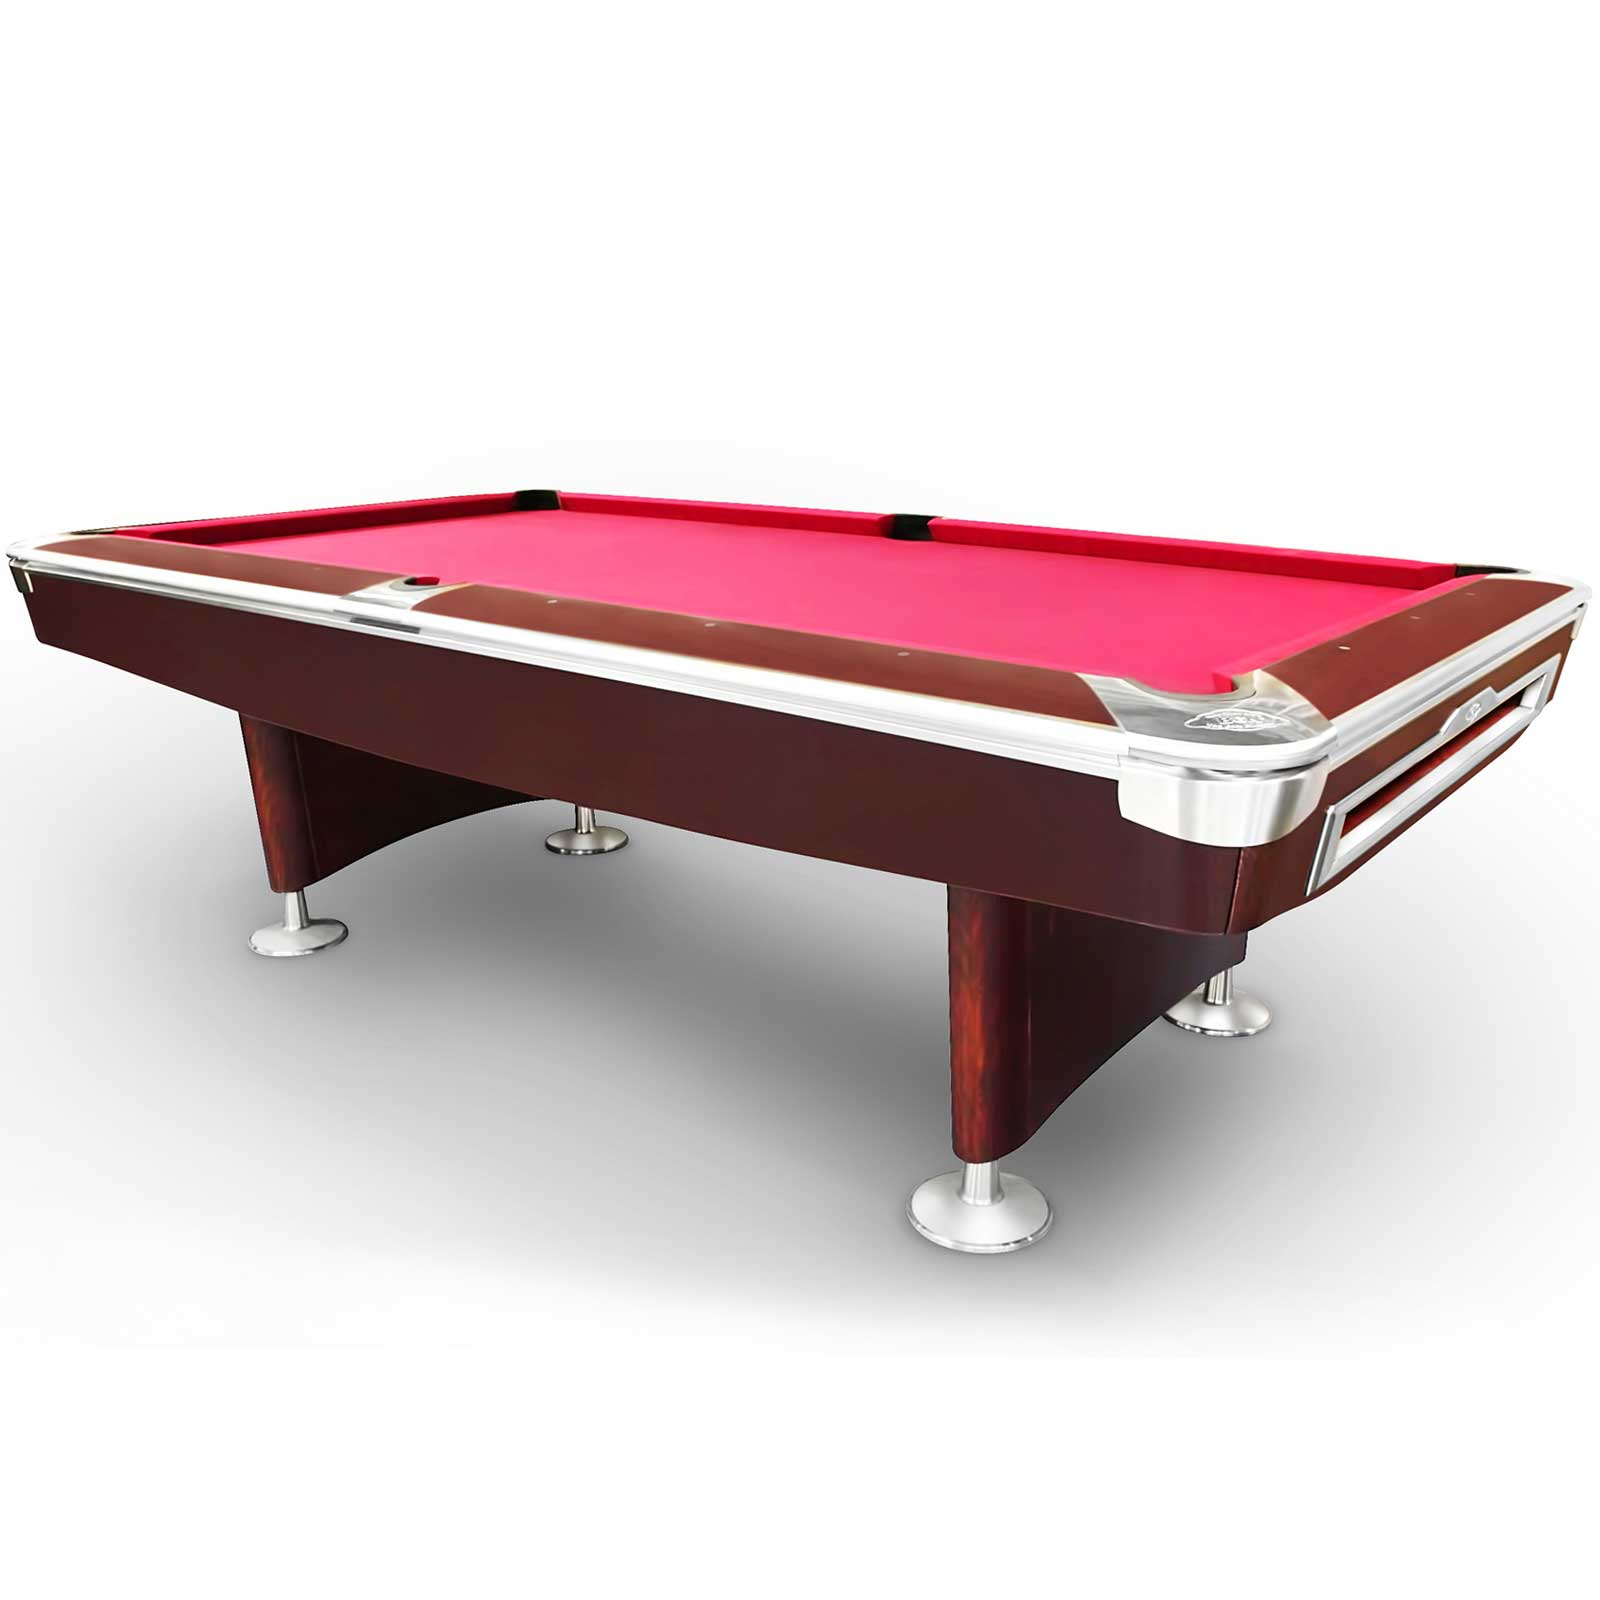 8 Foot Slate American Styled Billiards 9 Ball Table - Mahogany Body with Burgundy felt